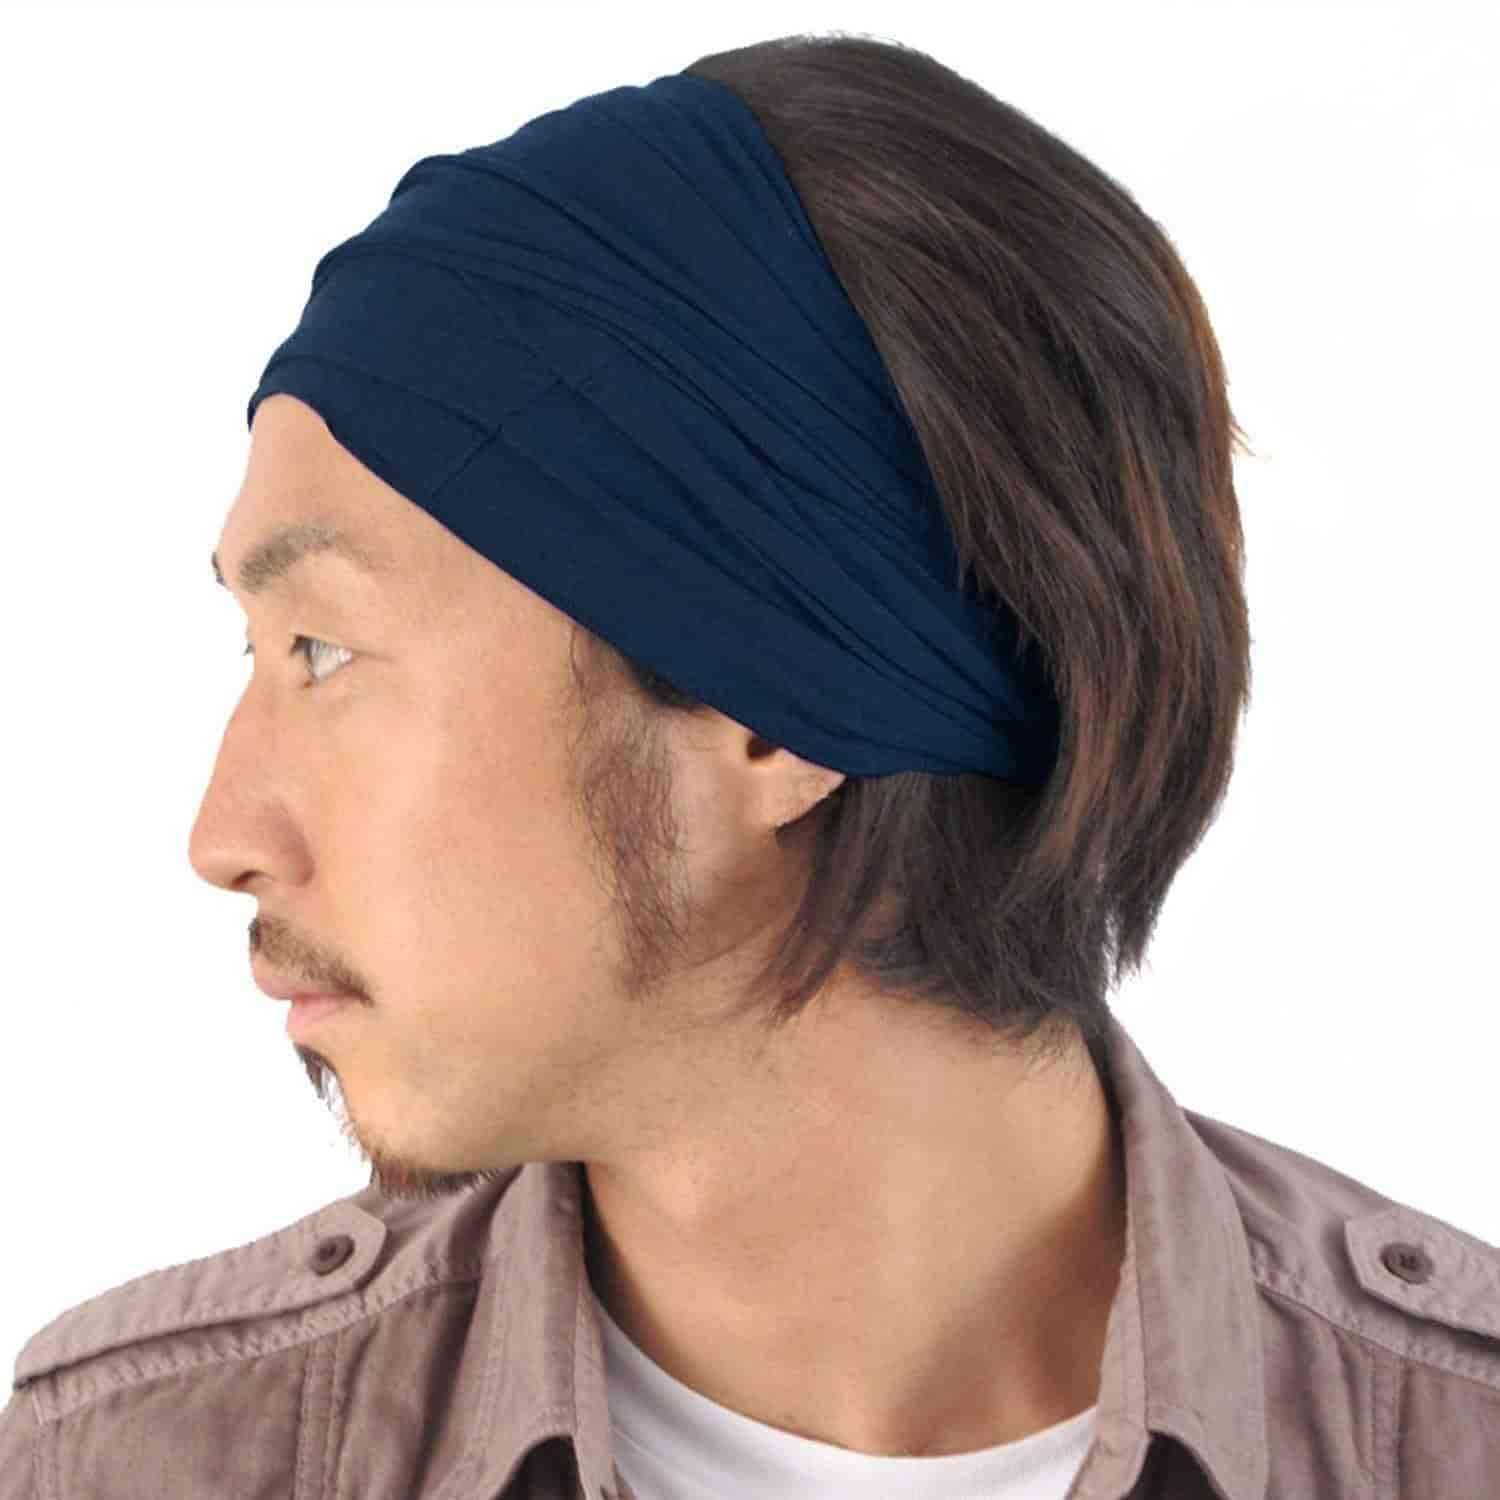 Buy Casualbox Mens Elastic Bandana Headband Japanese Long Hair Dreads Head Wrap Navy Features Price Reviews Online In India Justdial